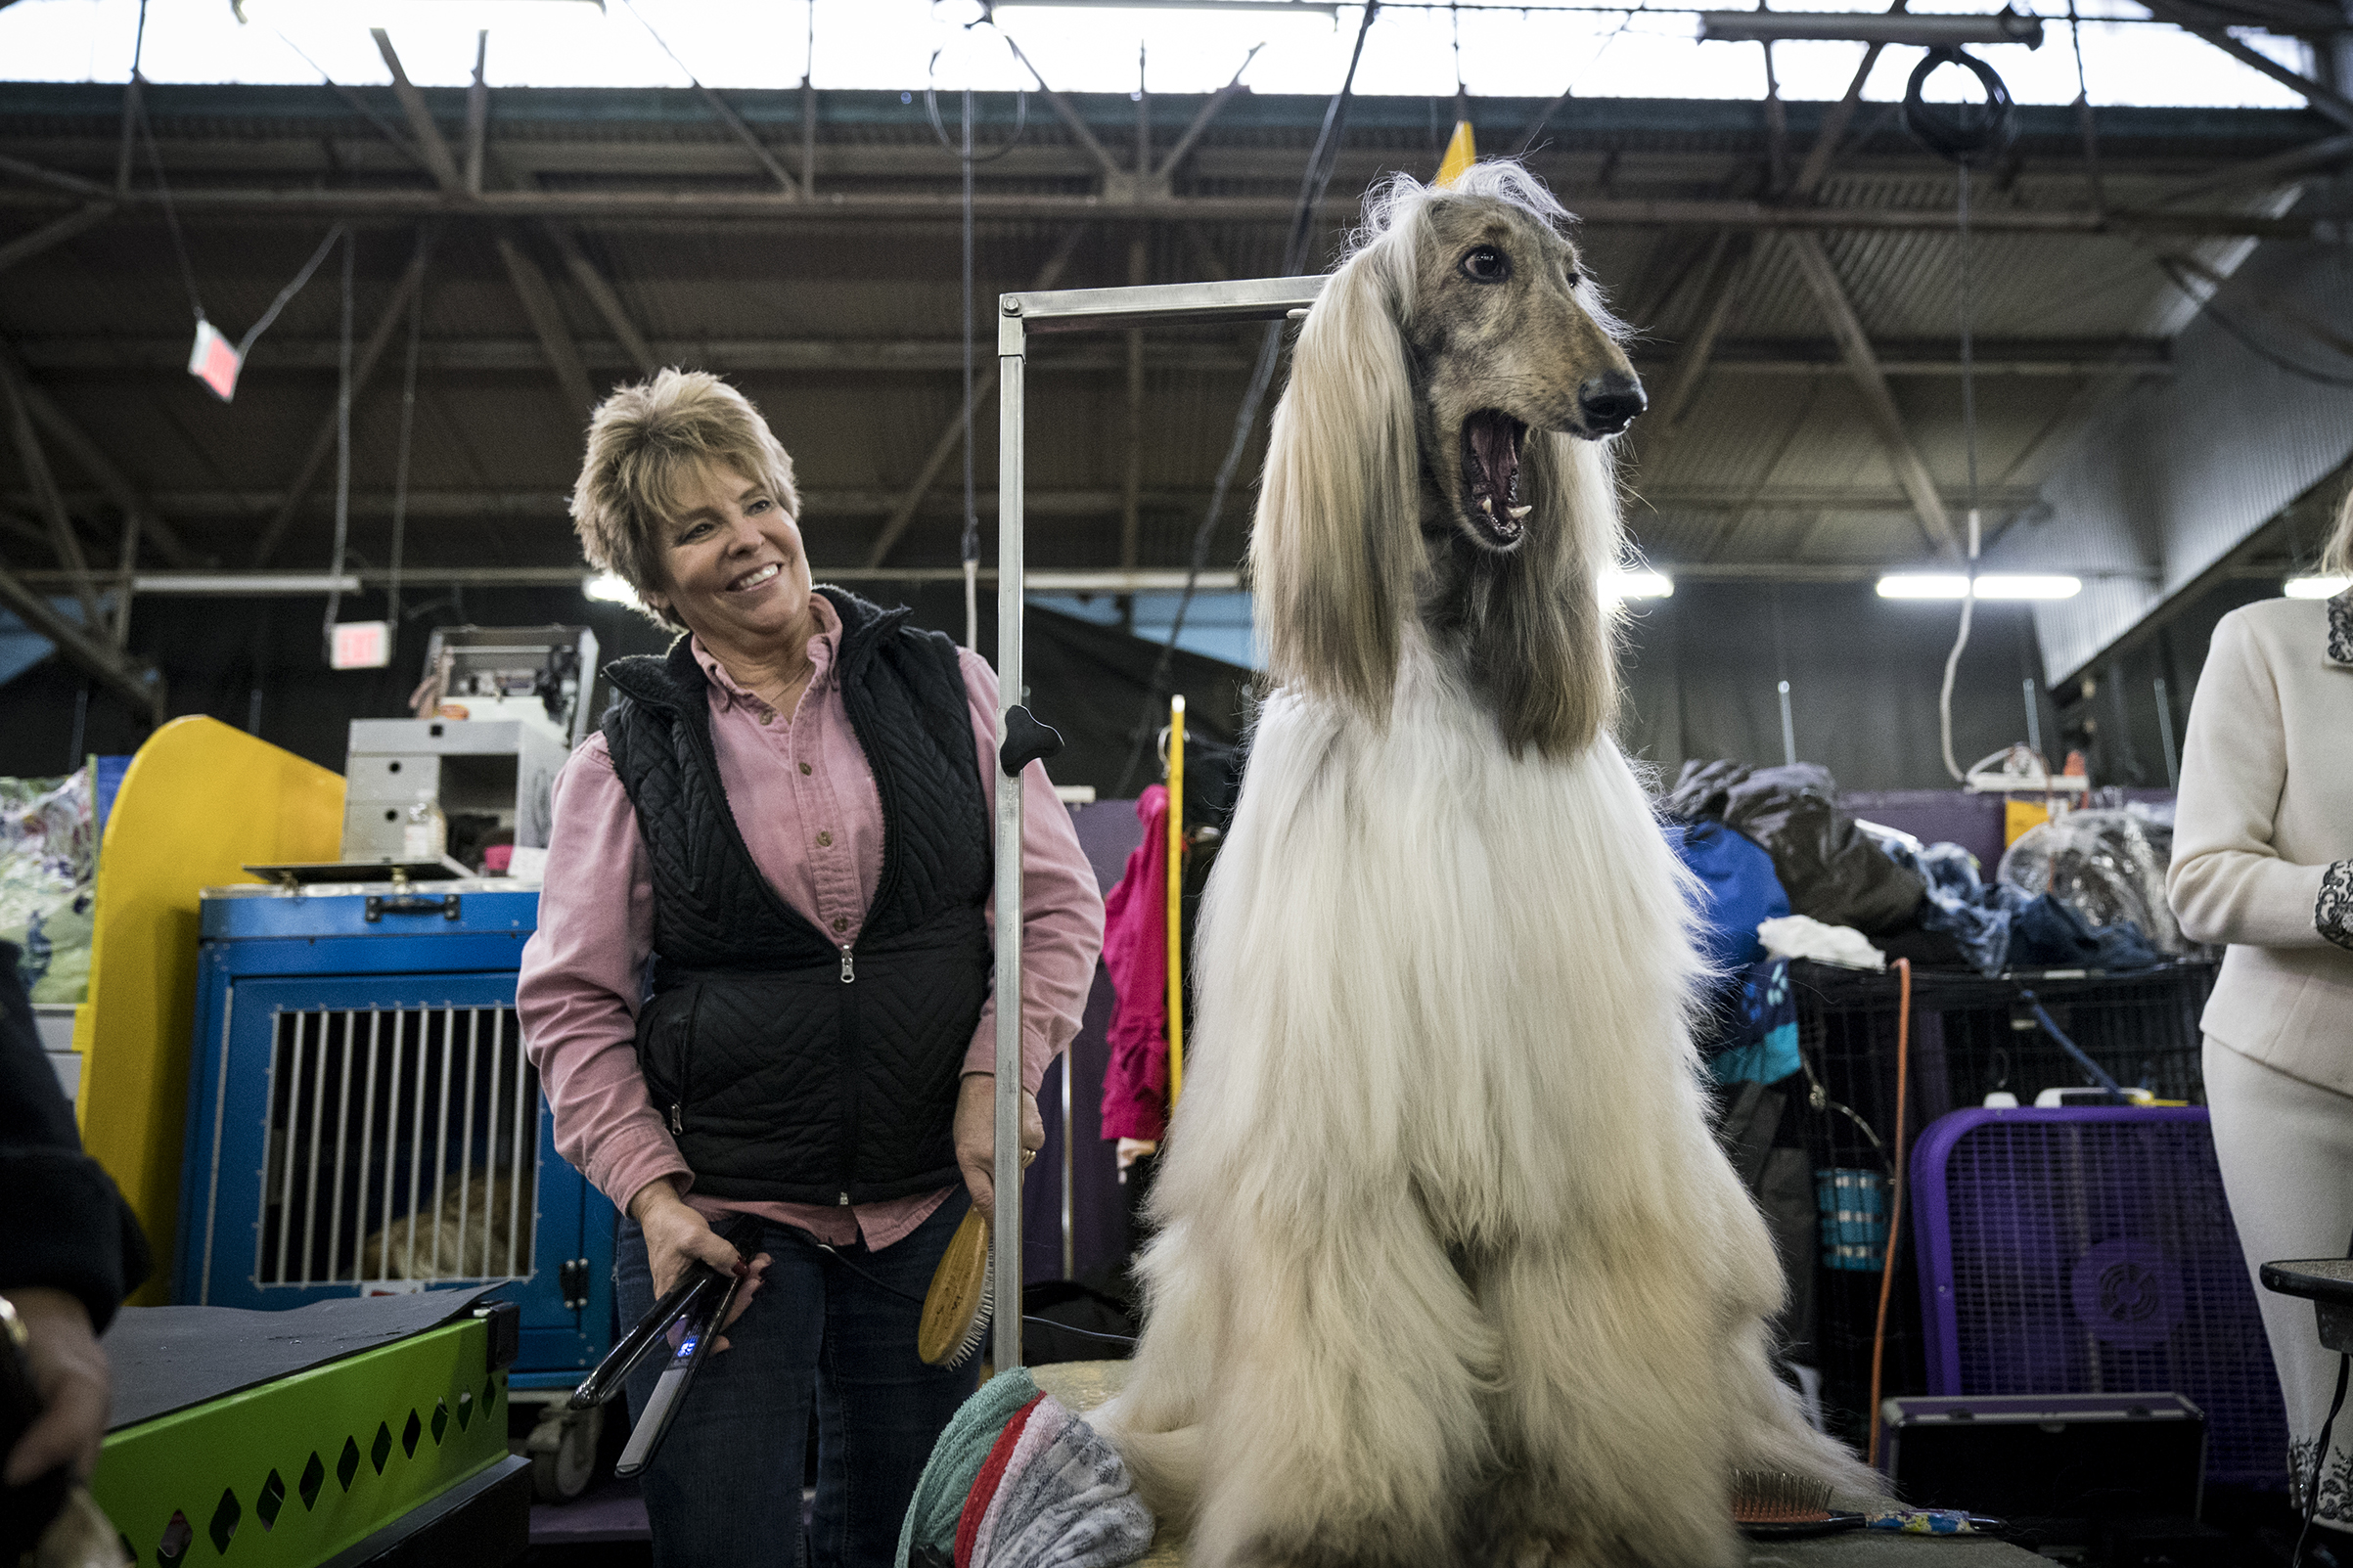 Divin the Afghan Hound yawns while sitting backstage in the grooming area at the 142nd Westminster Kennel Club Dog Show at The Piers in New York on Feb. 12, 2018.